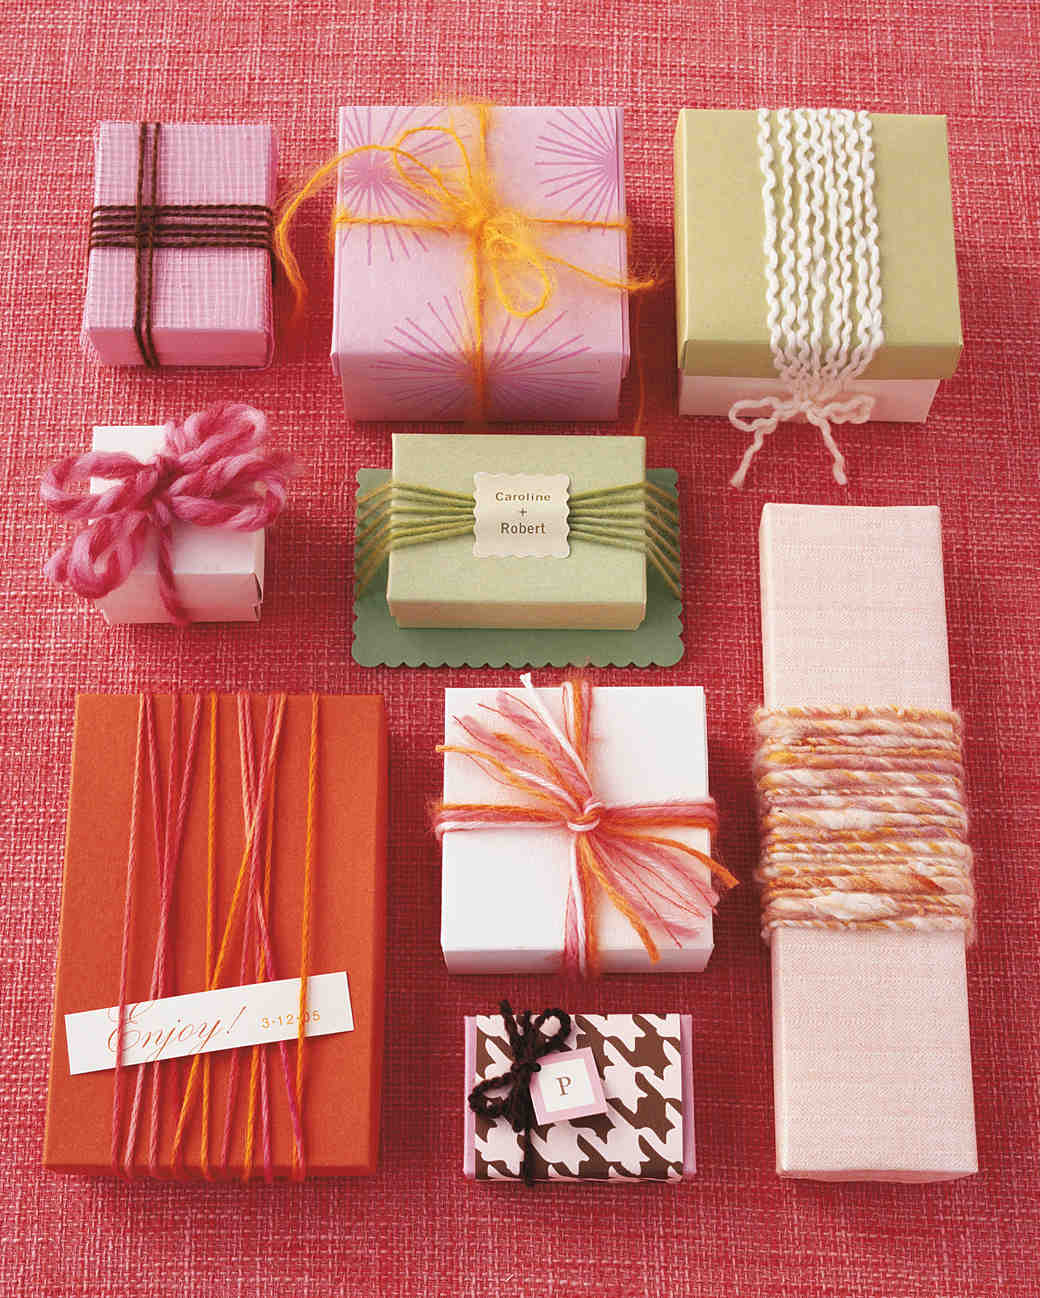 diy-favor-boxes-yarn-win05-0715.jpg